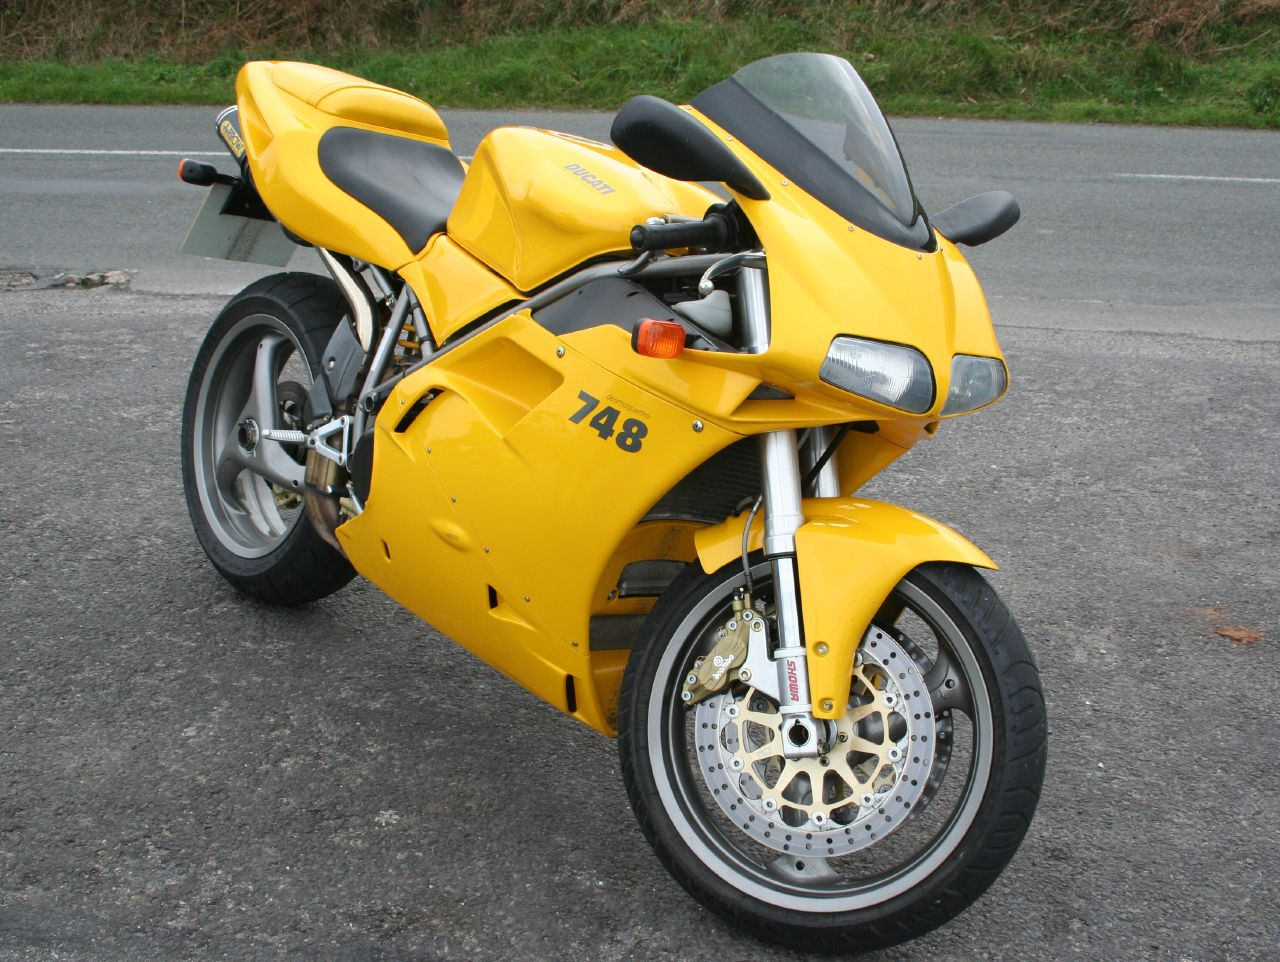 Ducati 748 Biposto 1996 wallpapers #14142